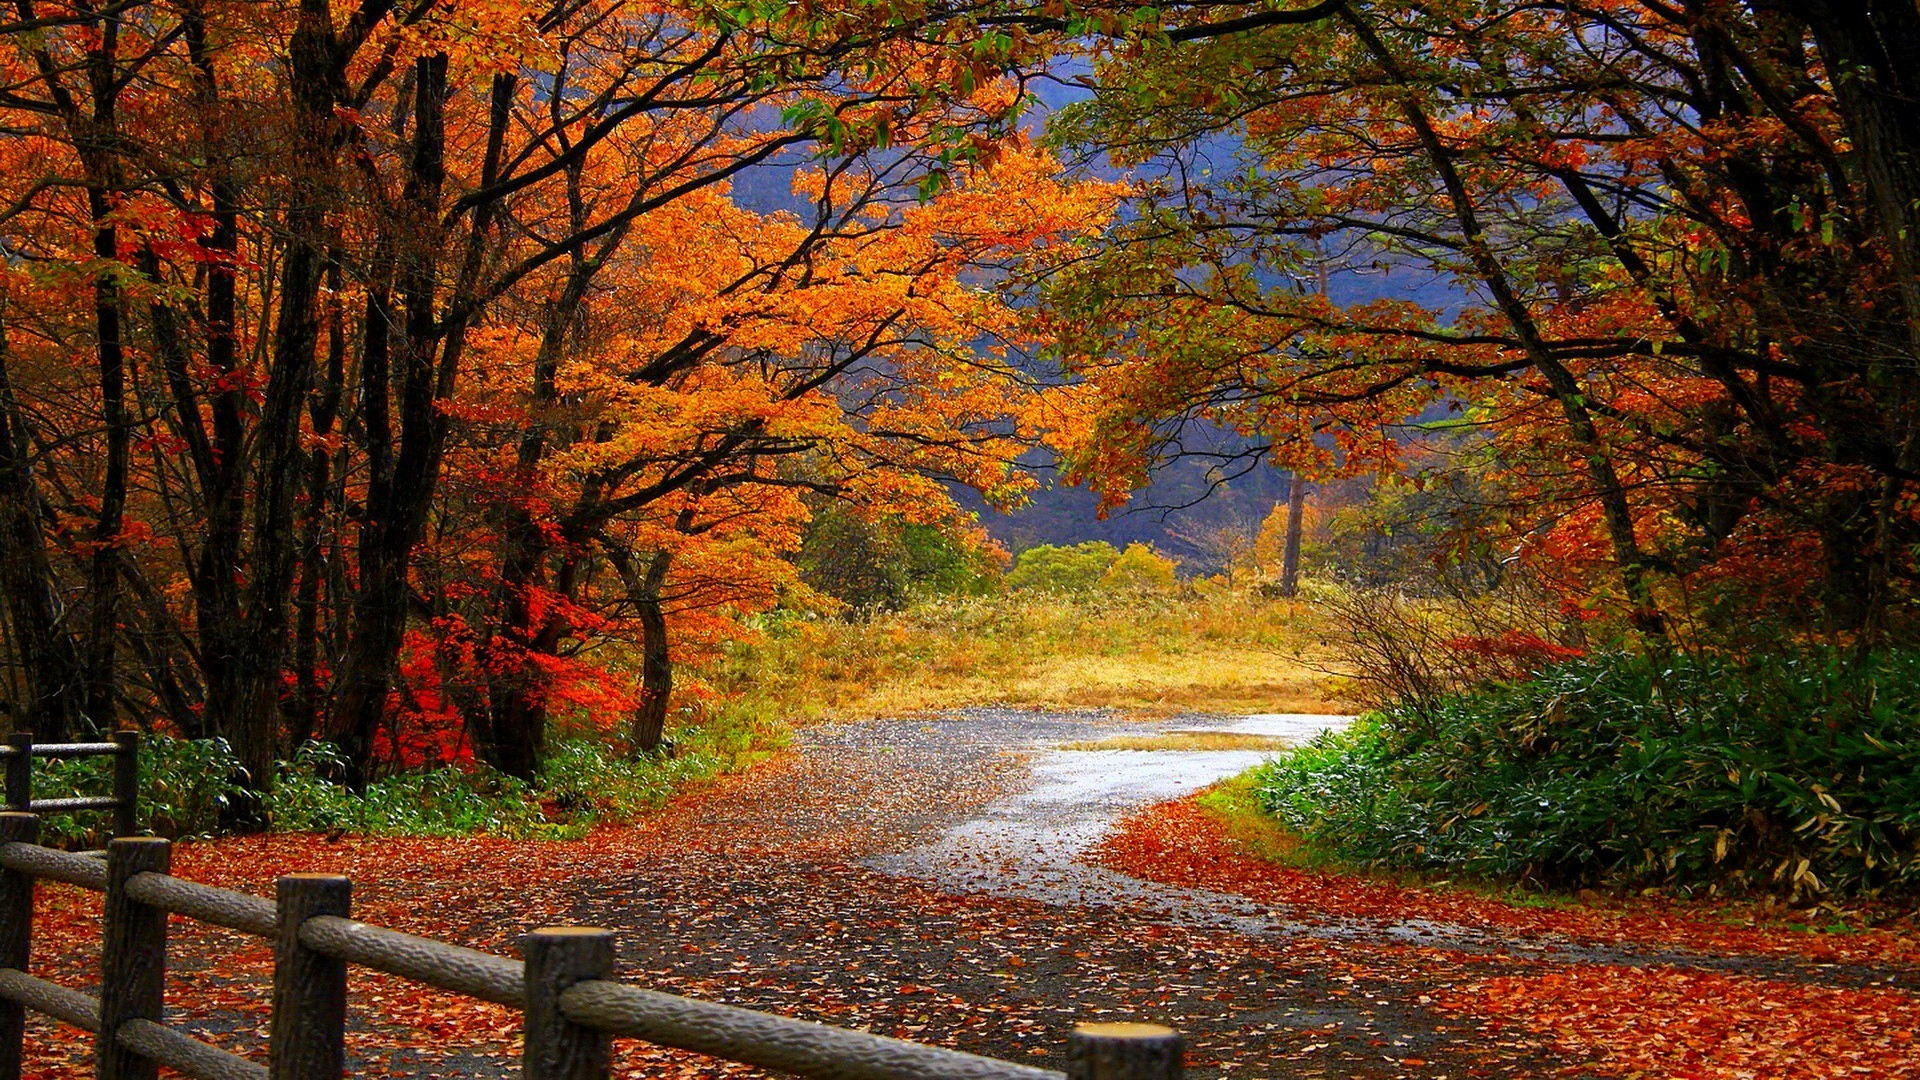 Autumn Computer Wallpapers Desktop Backgrounds 1920x1080 ID 1920x1080